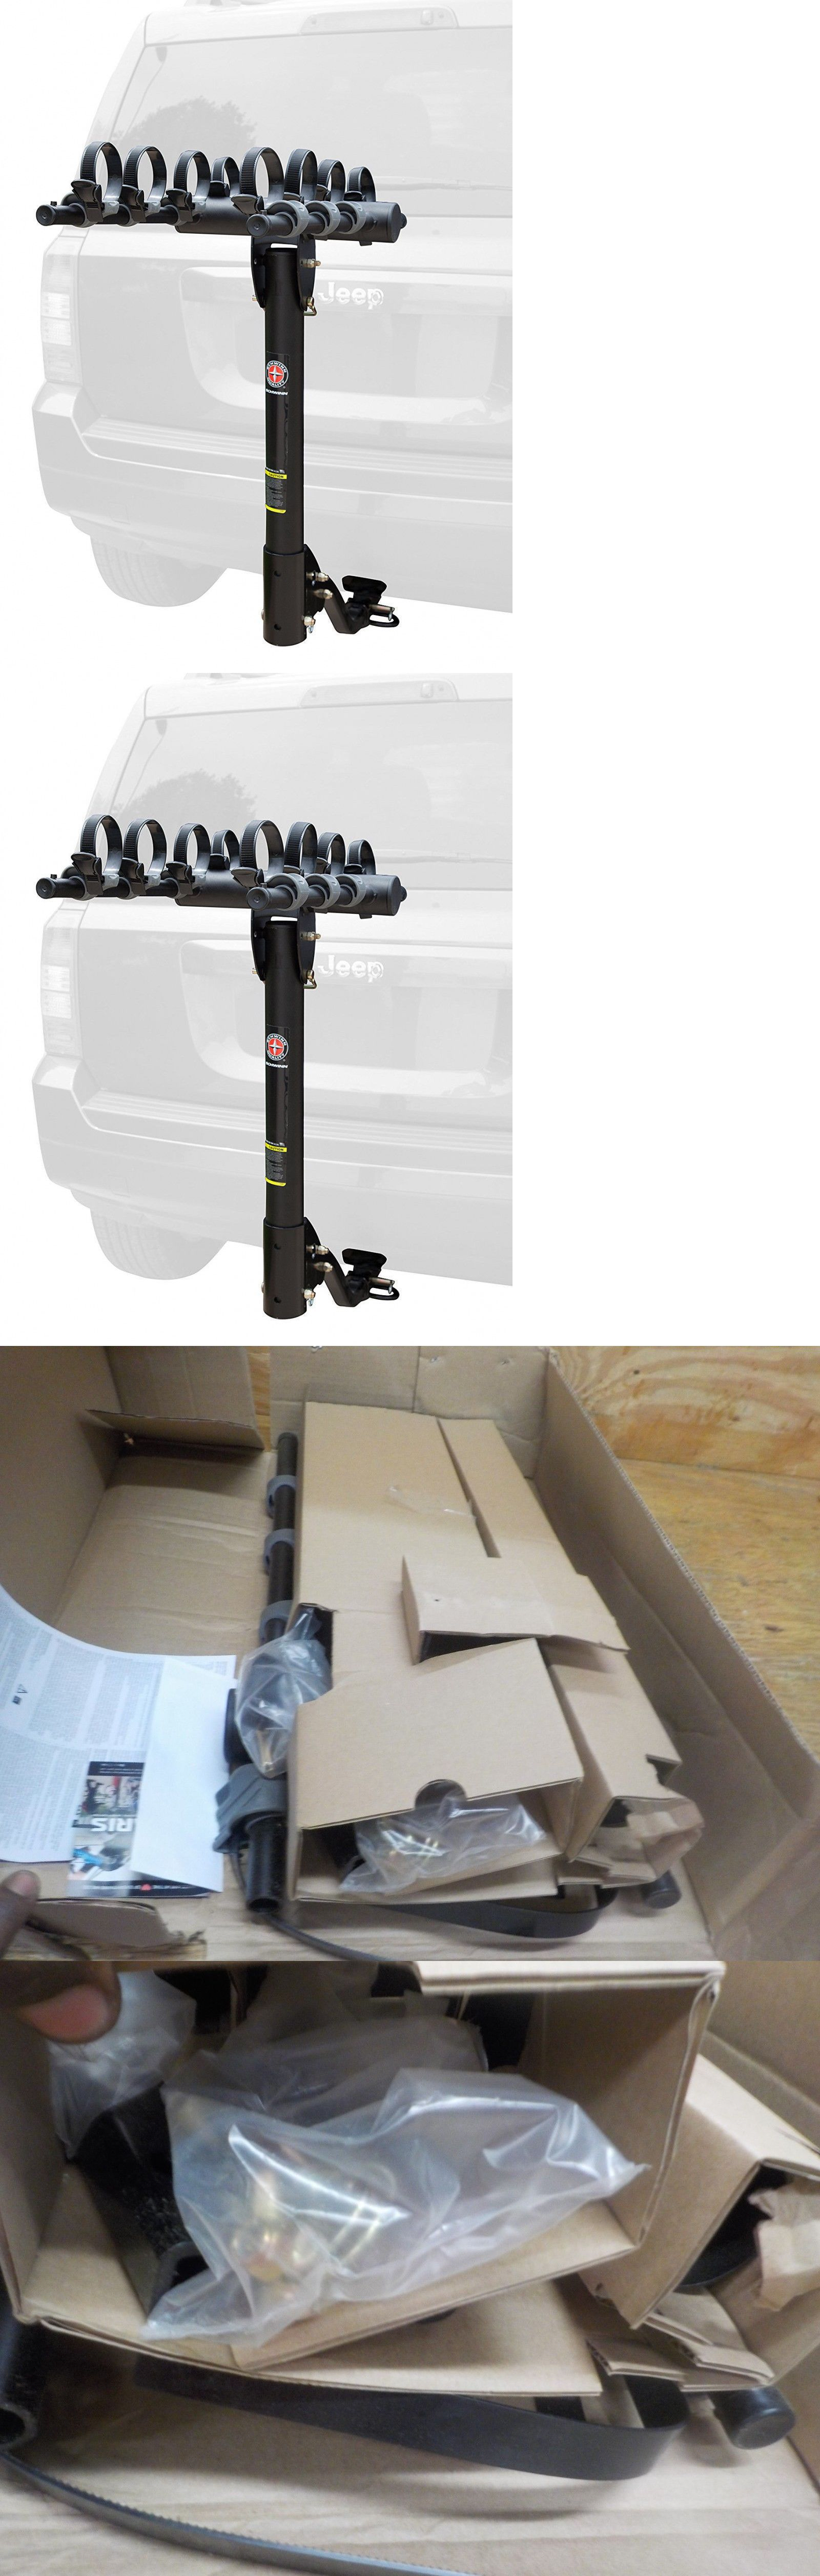 0536a6eccf2 Car and Truck Racks 177849: Schwinn 4-Bike Hitch Mount Rack -> BUY IT NOW  ONLY: $97 on eBay!